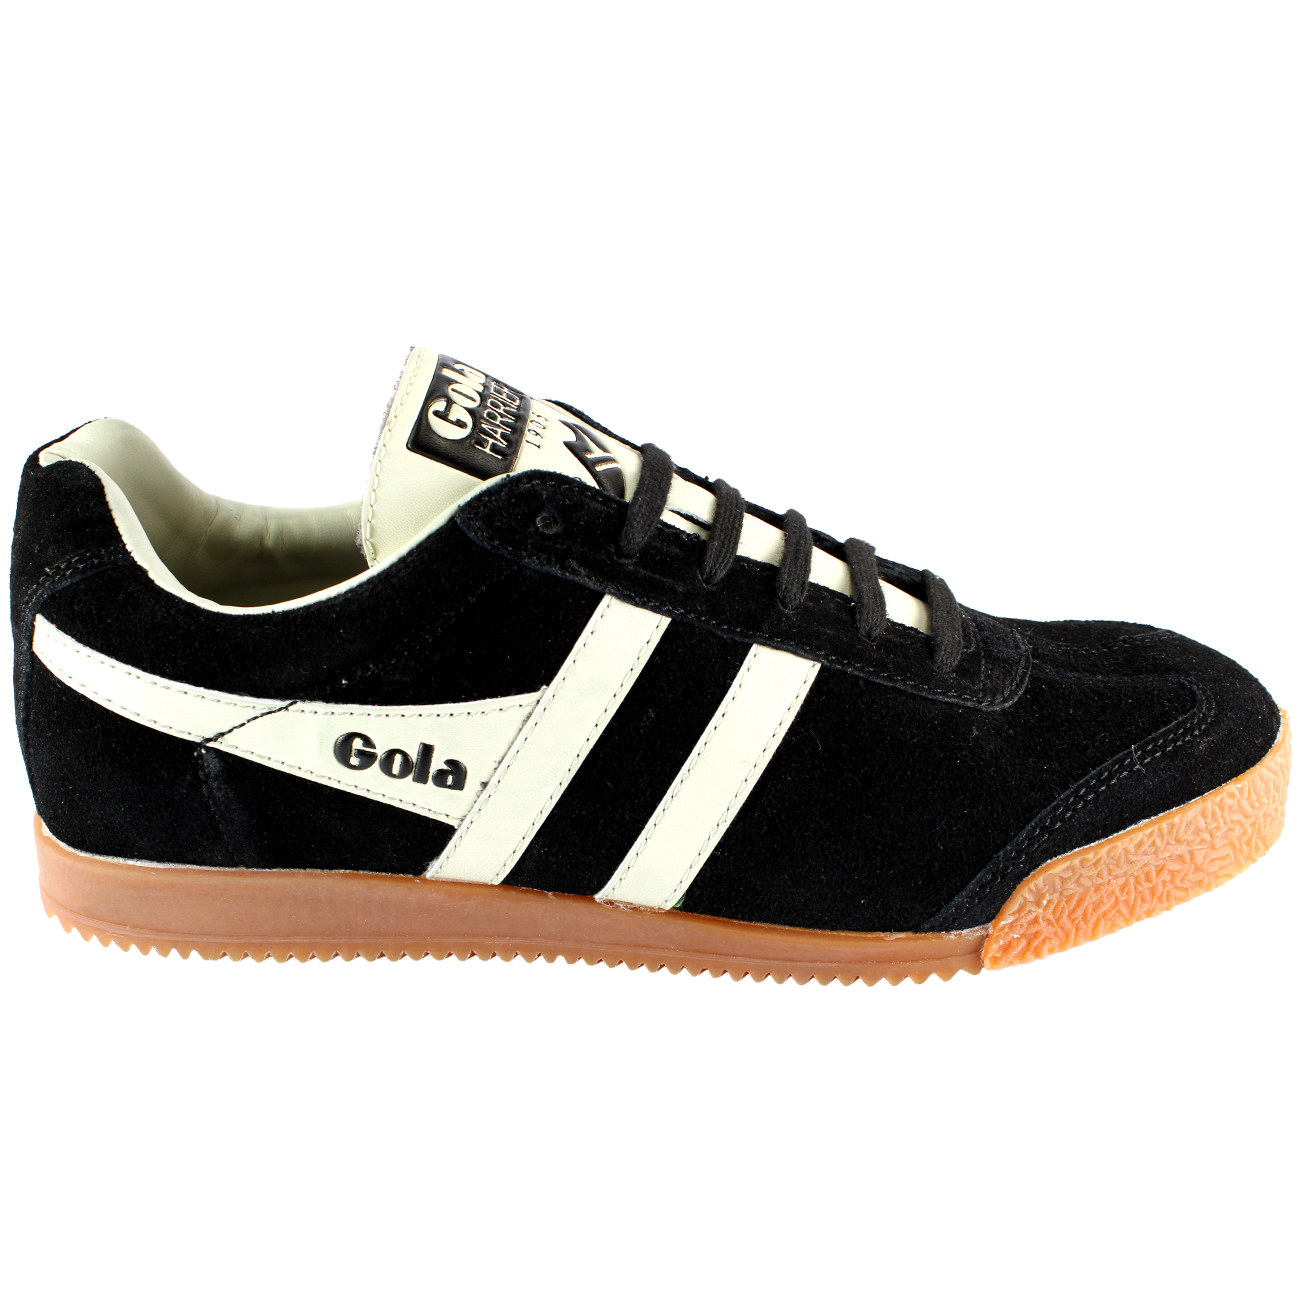 MENS GOLA HARRIER PREMIEM STRIPE STRIPE STRIPE LACE UP SUEDE LOW TOP Turnschuhe UK GrößeS 8-12 b6b0cc